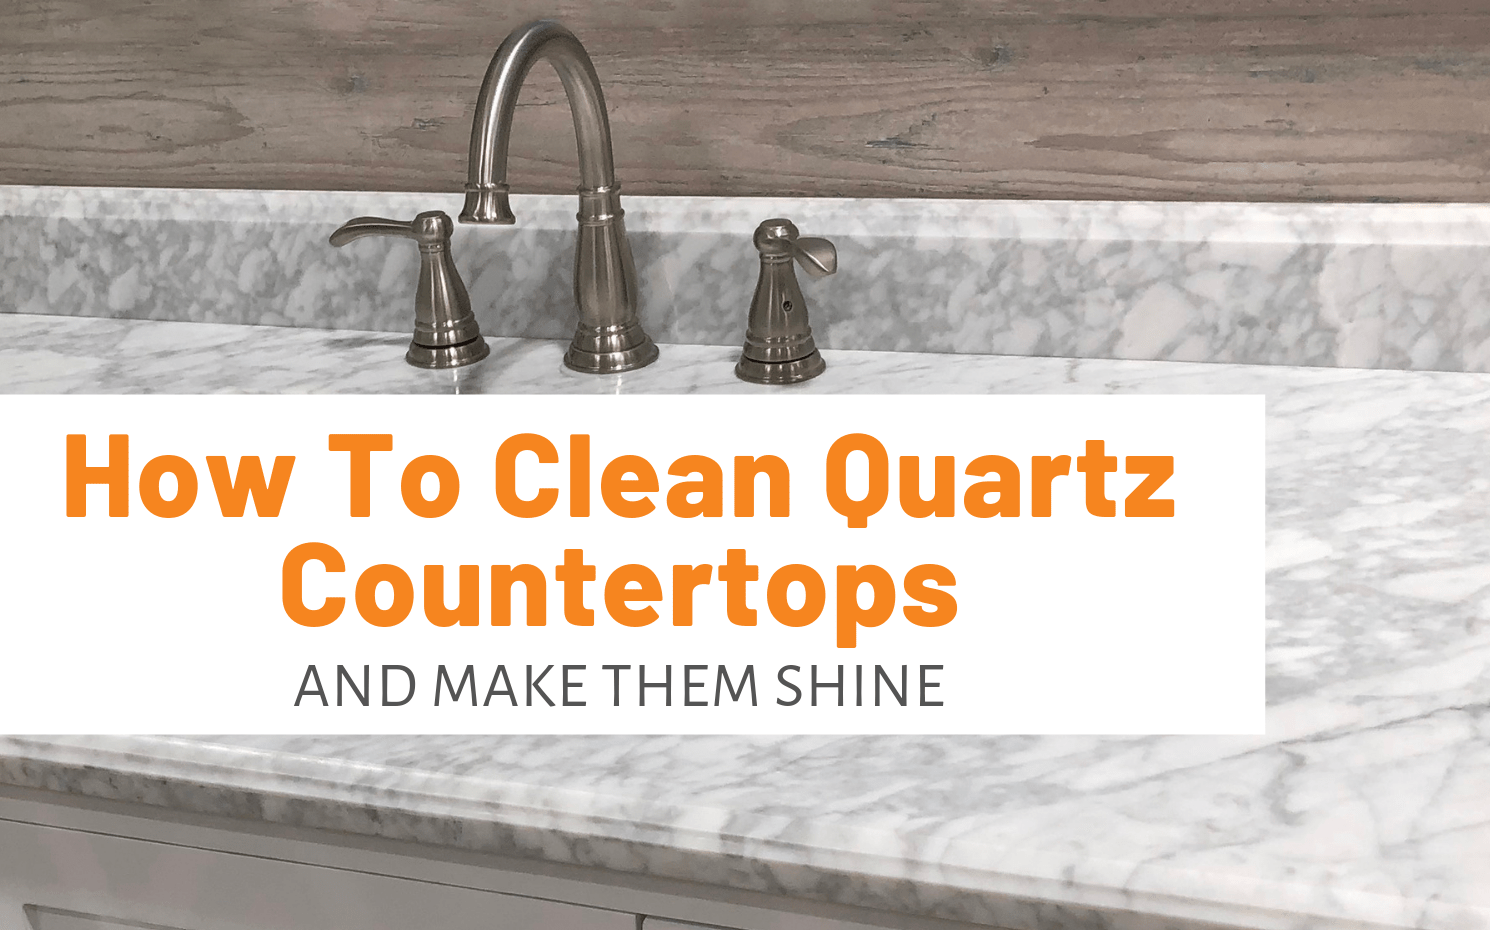 How To Clean Quartz Countertops And Make Them Shine